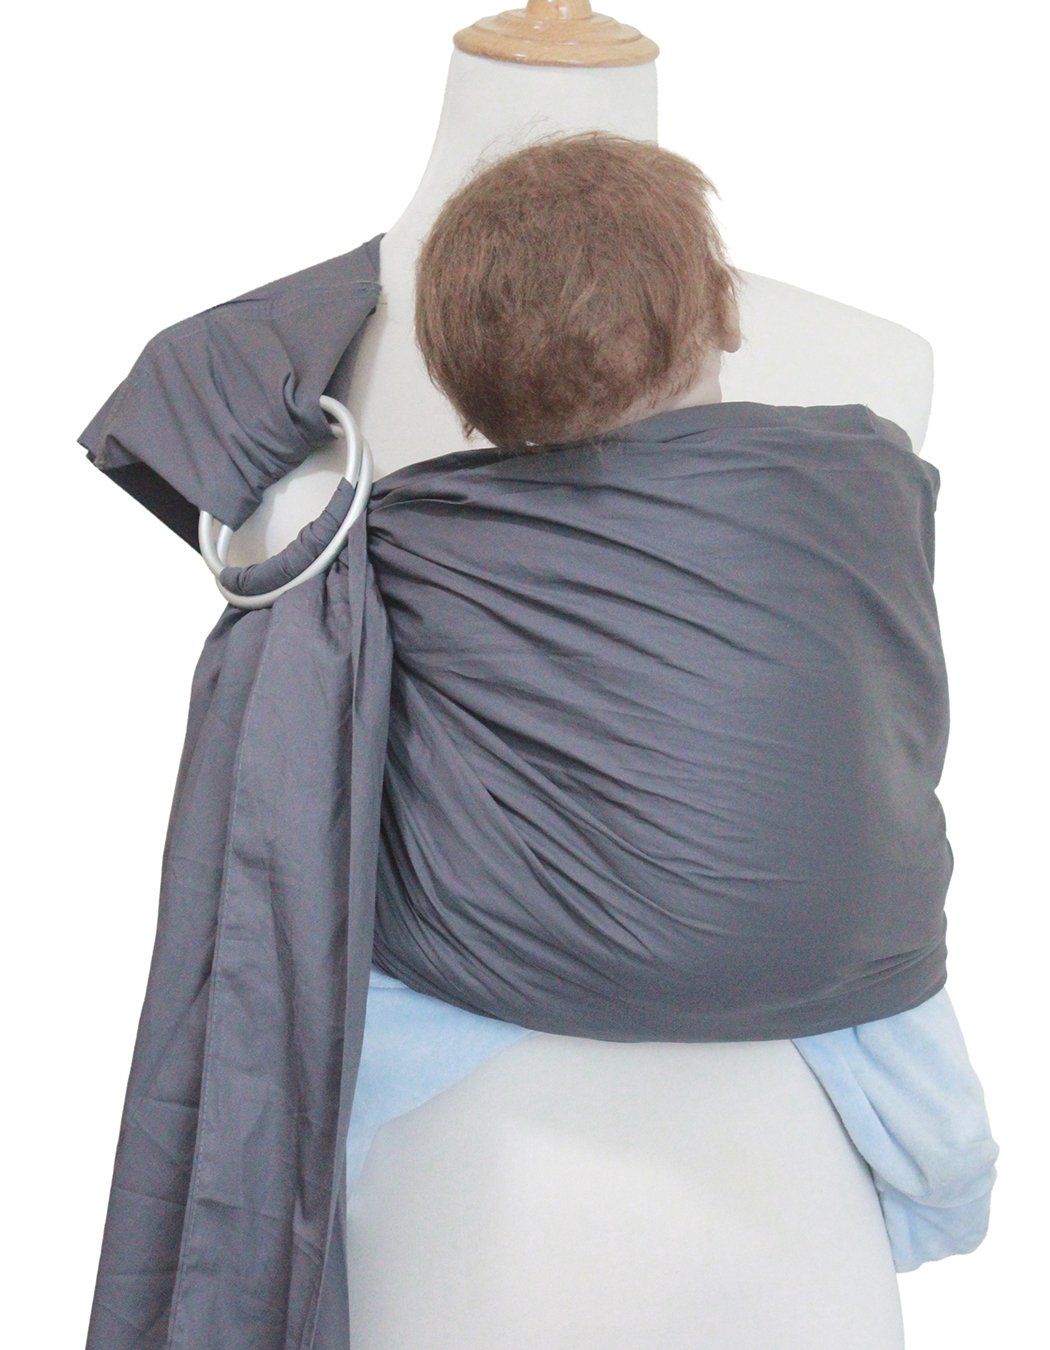 "Vlokup(TM) Wrap Original 100% Cotton Adjustable Baby Carrier Infant Lightly Padded Ring Sling Grey Vlokup 100% natural cotton.Comfortable for newborns up to 18 pounds The baby ring sling makes a deep pocket that allows for a more comfortable fit for baby and a better ""grip"" on baby's legs. Most moms find it with the less slipping problem for squirmy babies. Lightly padded Shoulder portion distributes weight through the torso and avoids straining the neck. Lightly padded railings provide the right amount of cushioning for baby's tender thighs, with no sharp edge cutting into flesh. Vlokup sling carrier has no overheating problem for baby and mother which is perfect for hot weather. 6"